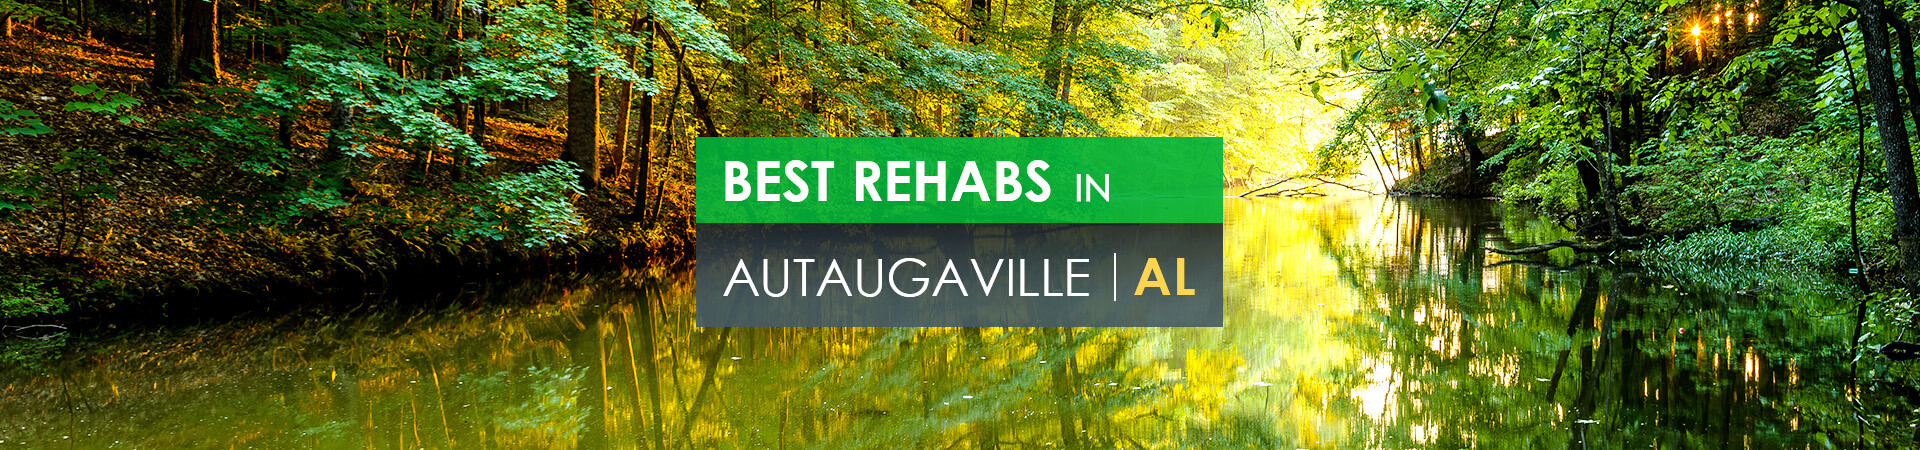 Best rehabs in Autaugaville, AL